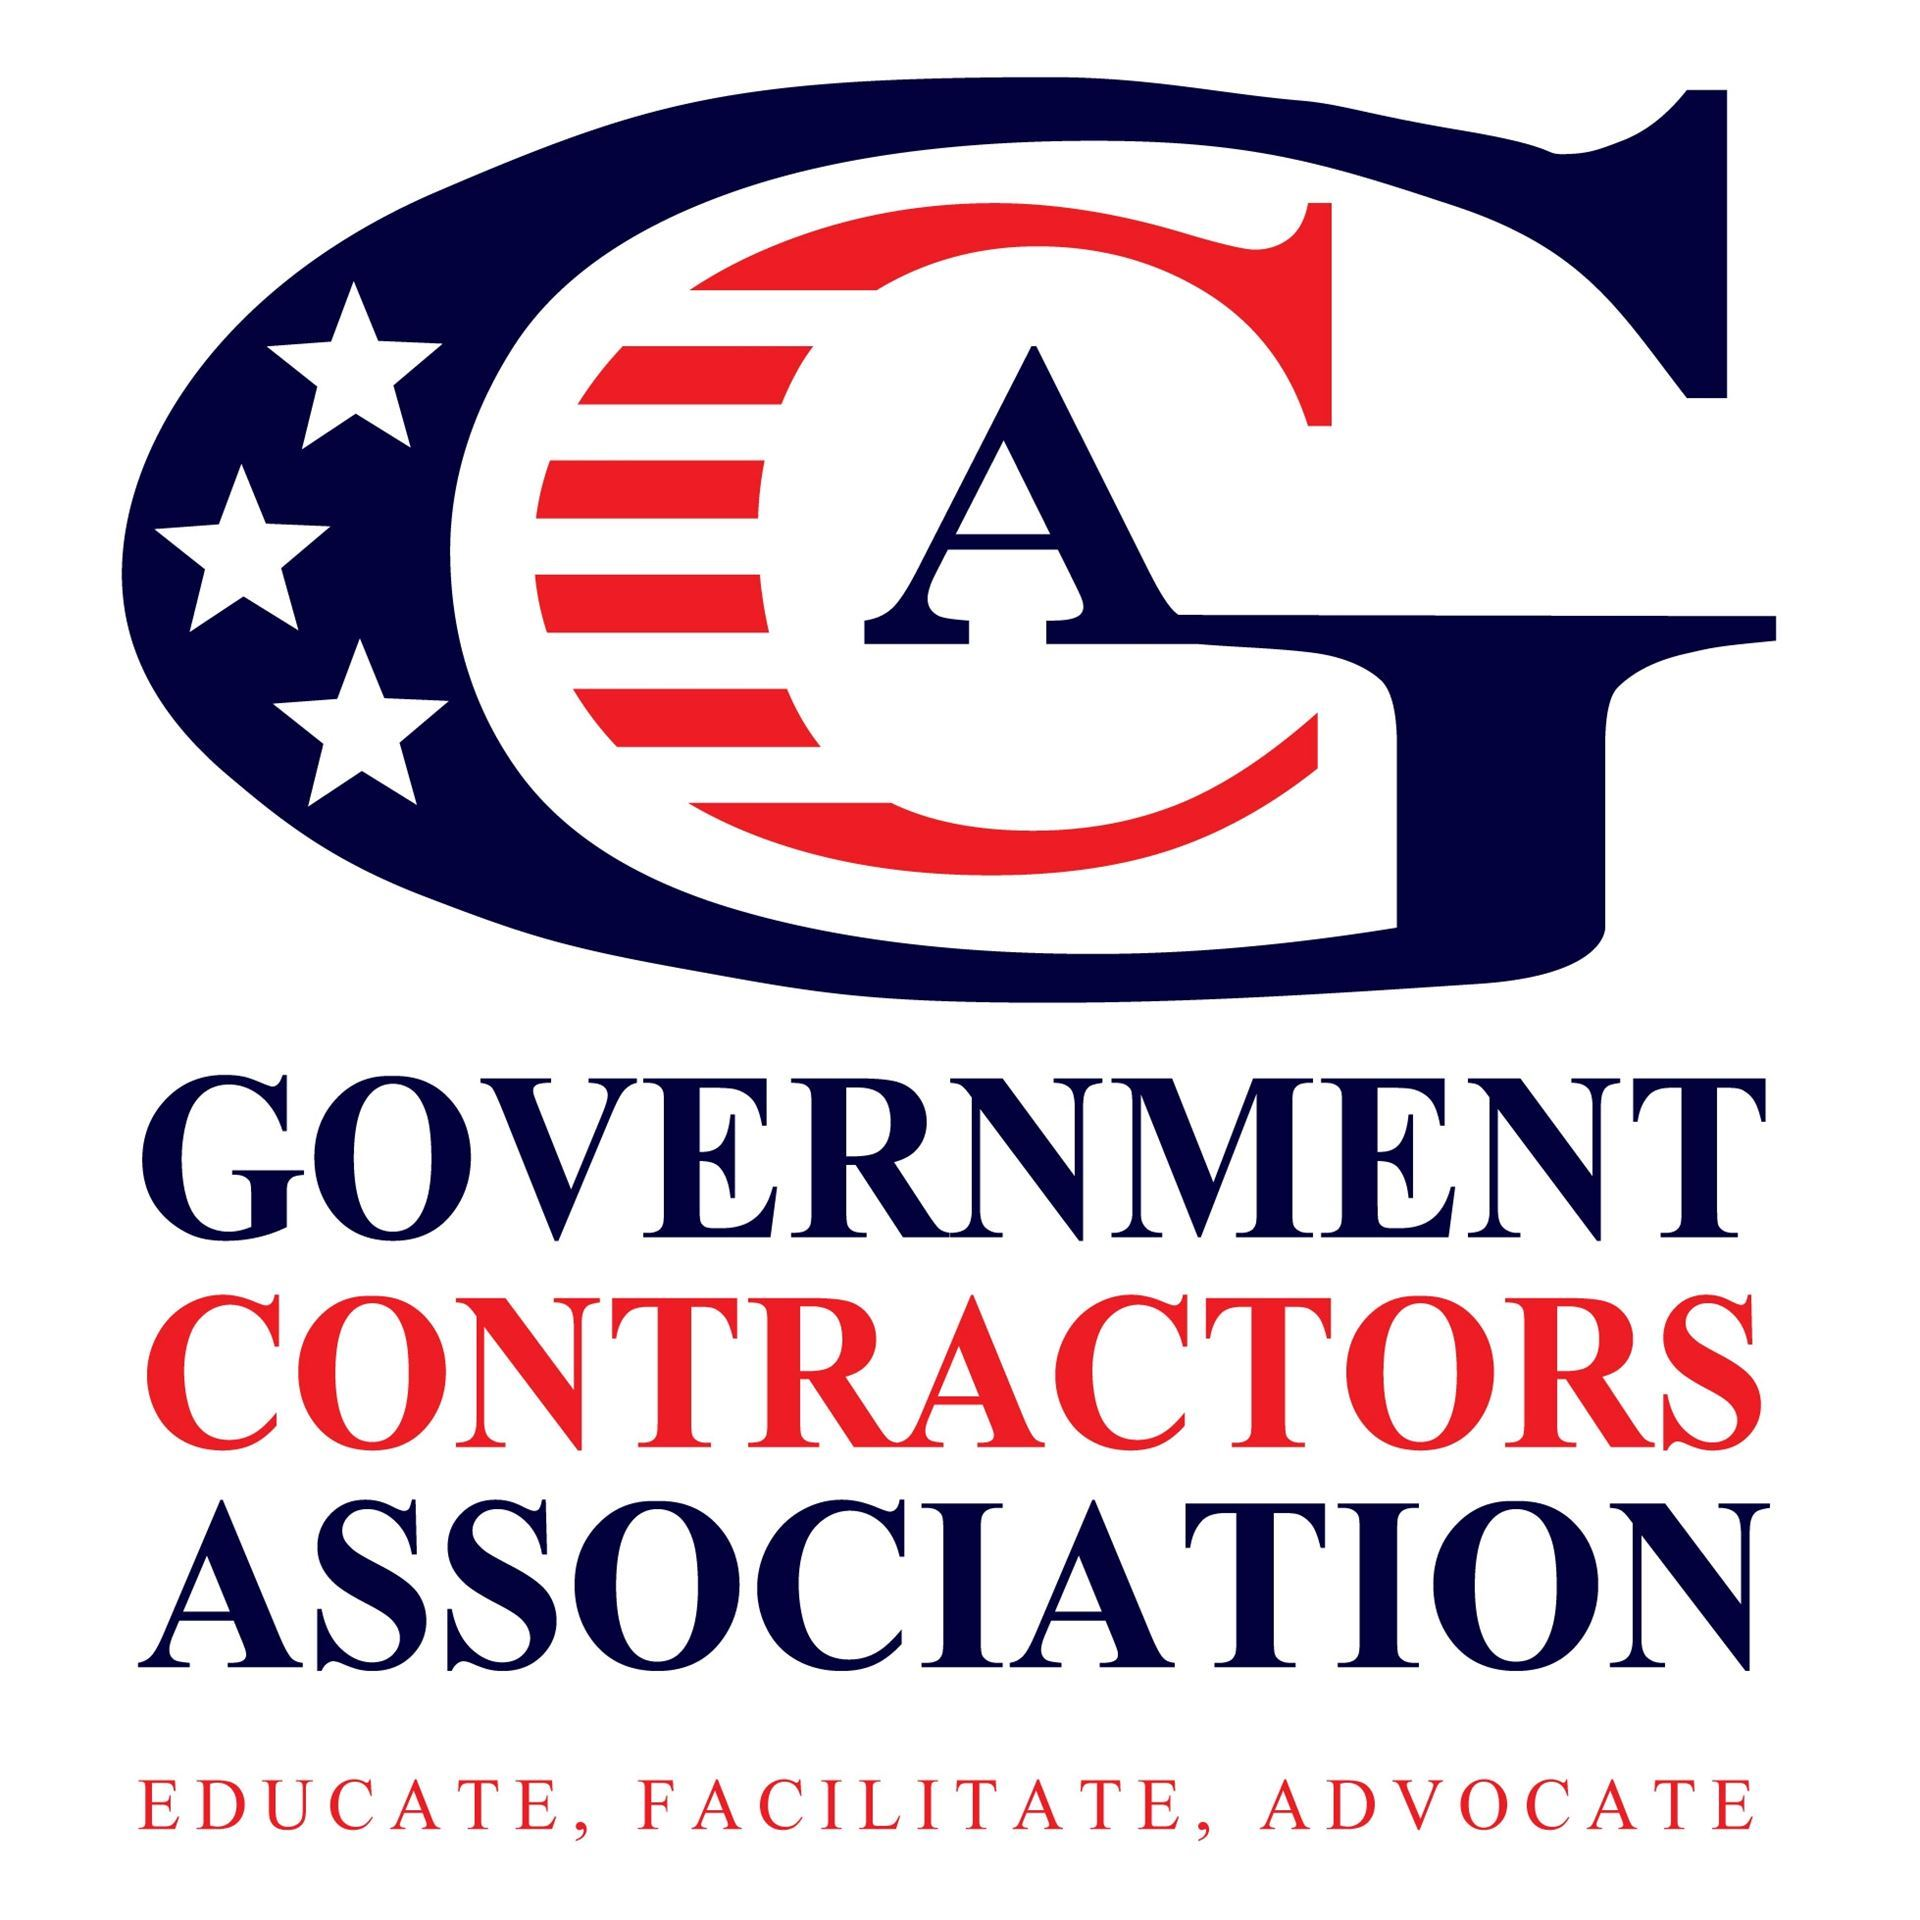 Government Contractors Association - Home